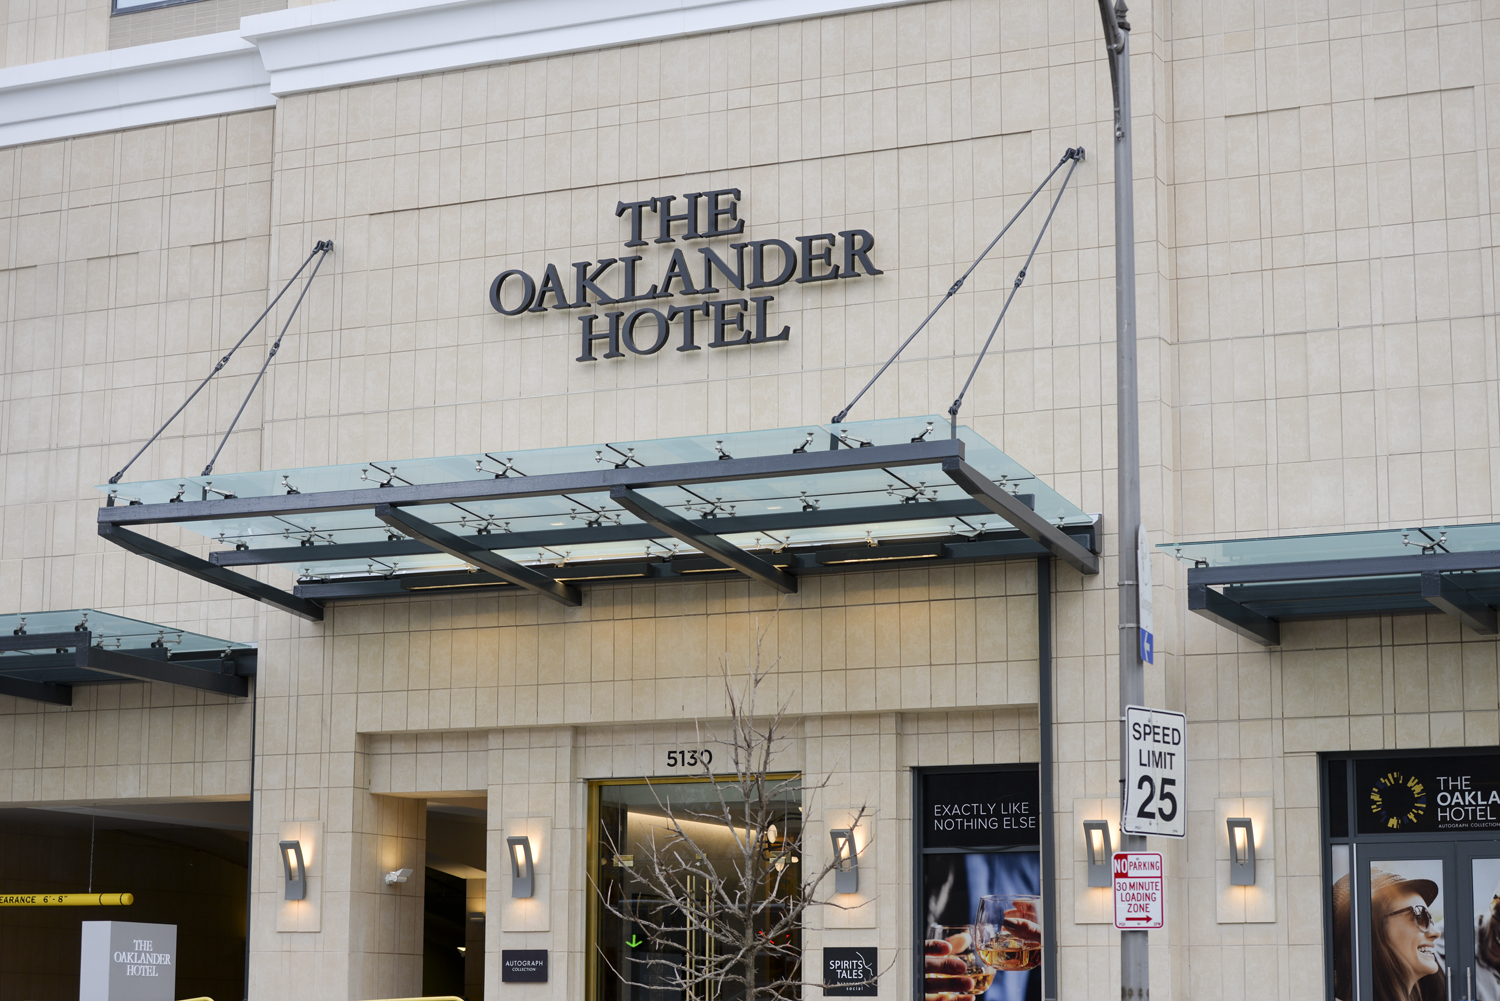 Oakland's newest hotel, The Oaklander, opened on Thursday, Feb. 28.